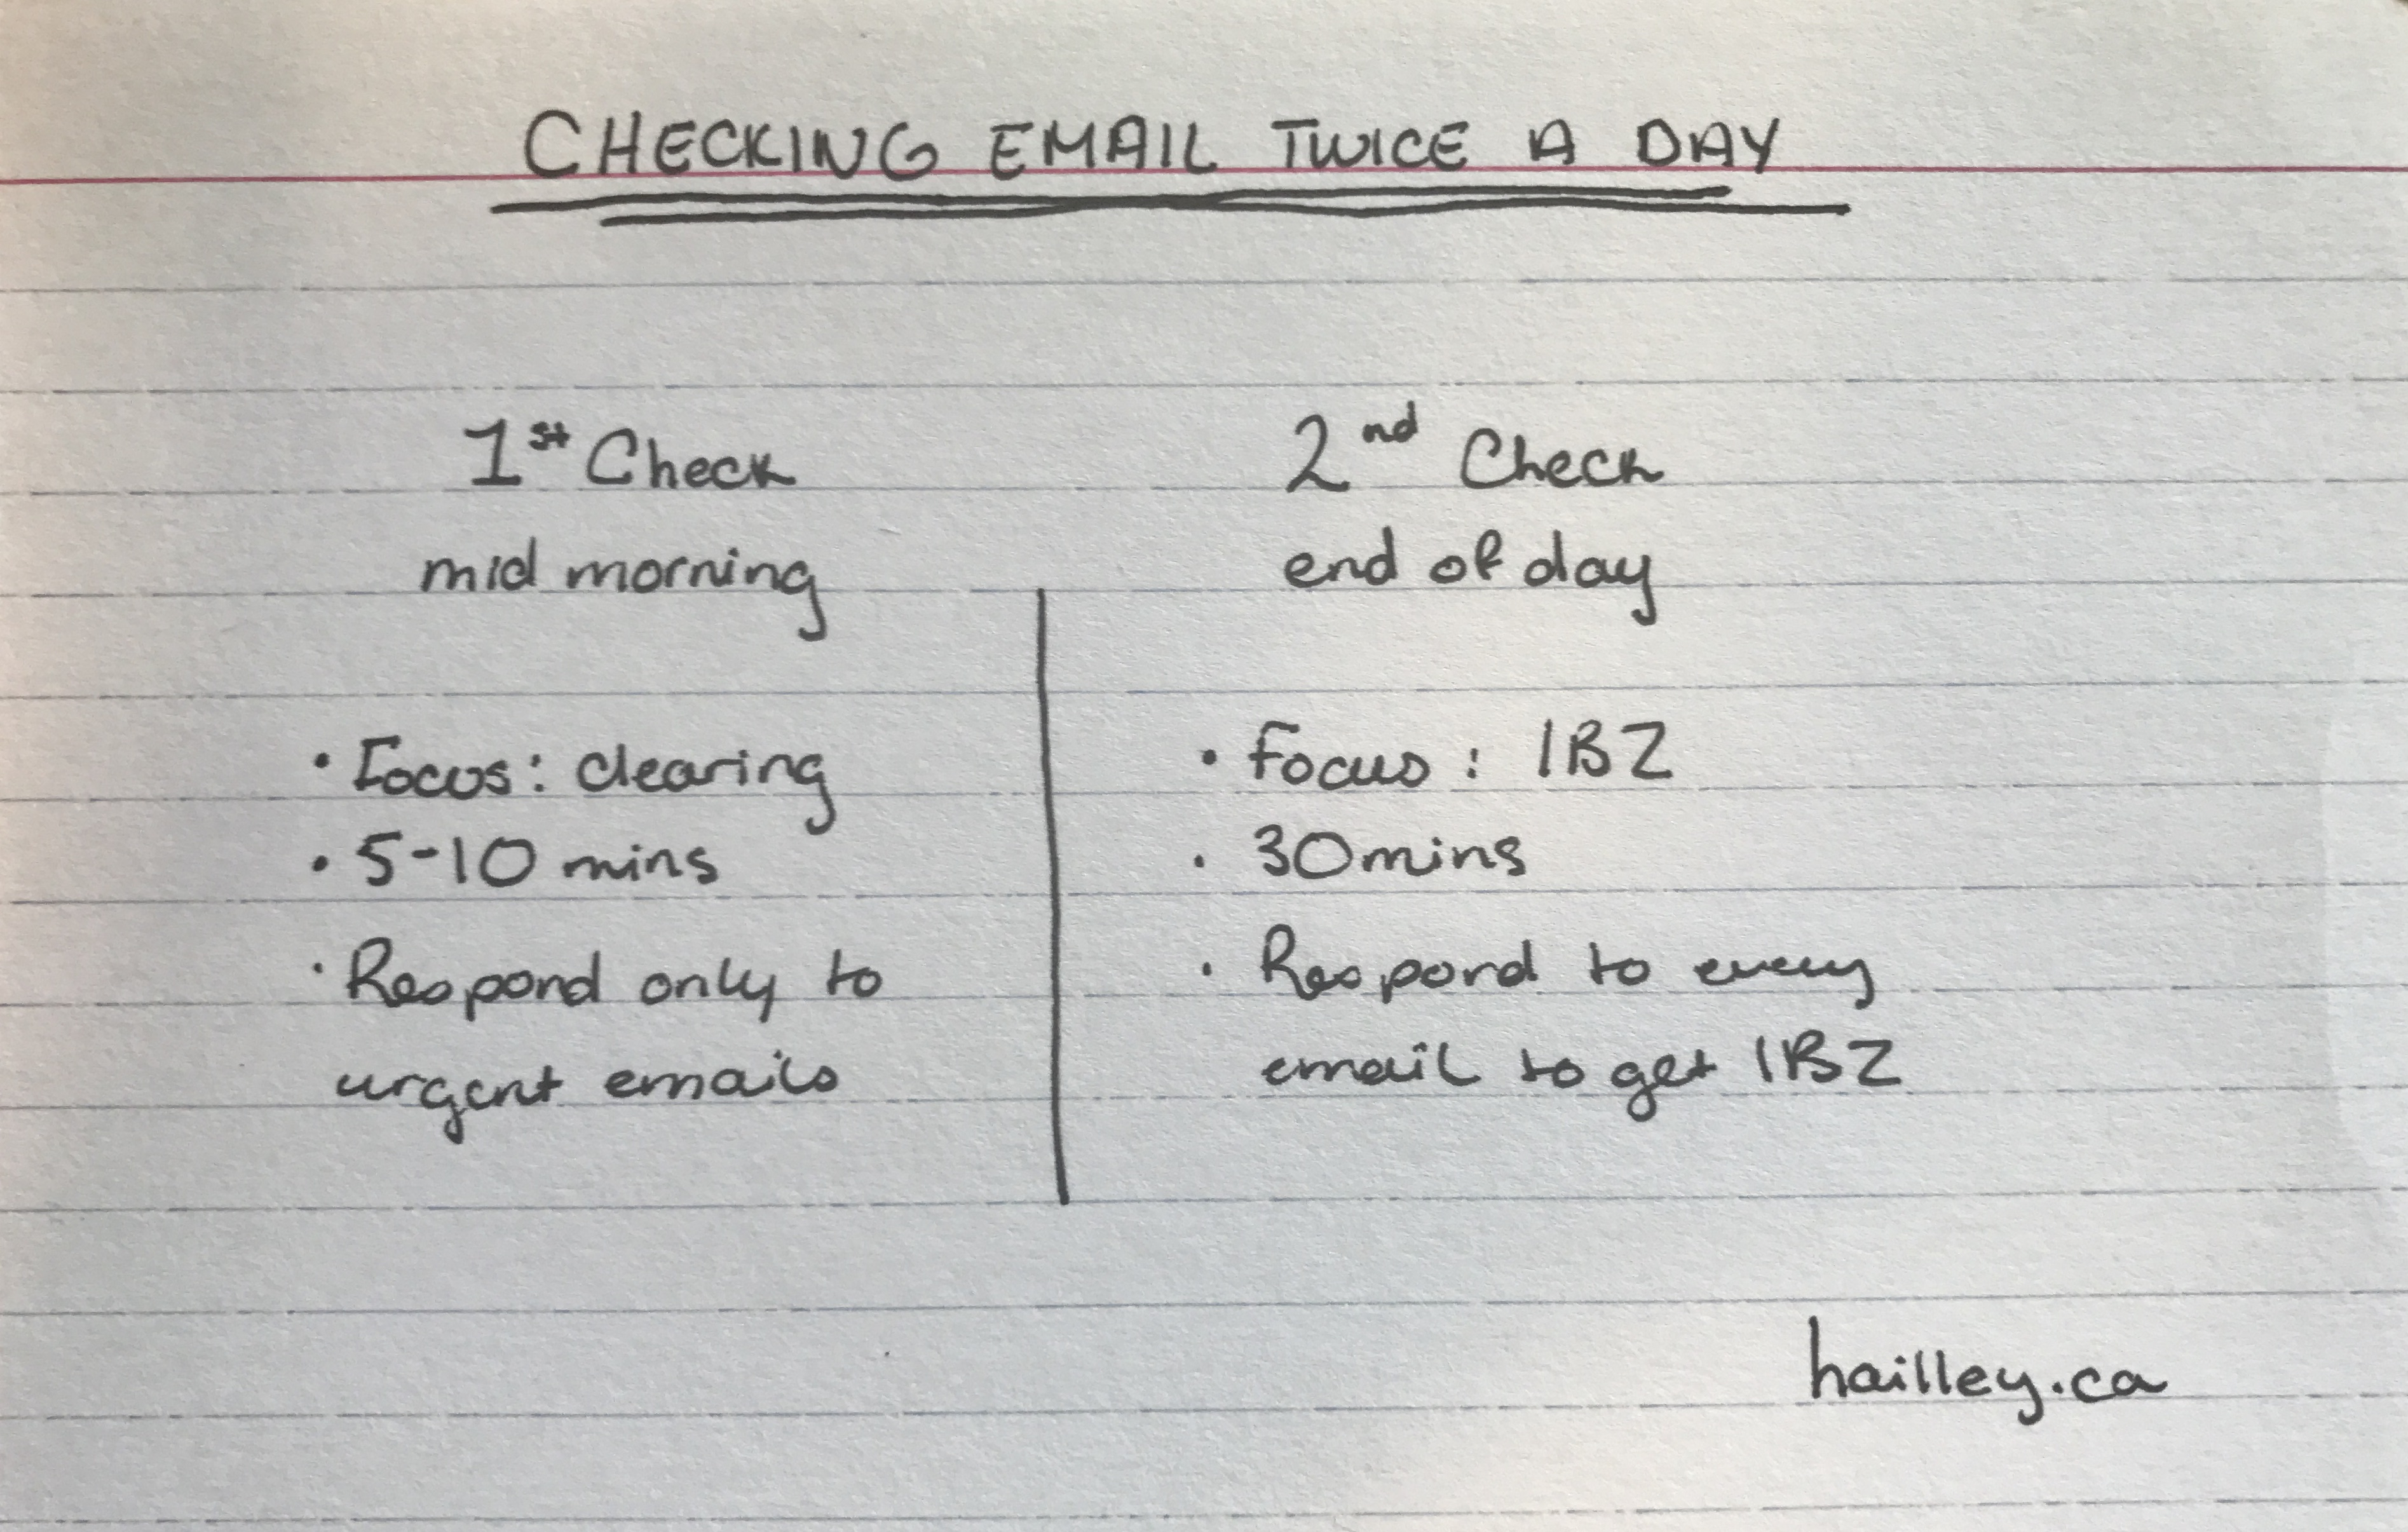 email system check twice a day hailley griffis